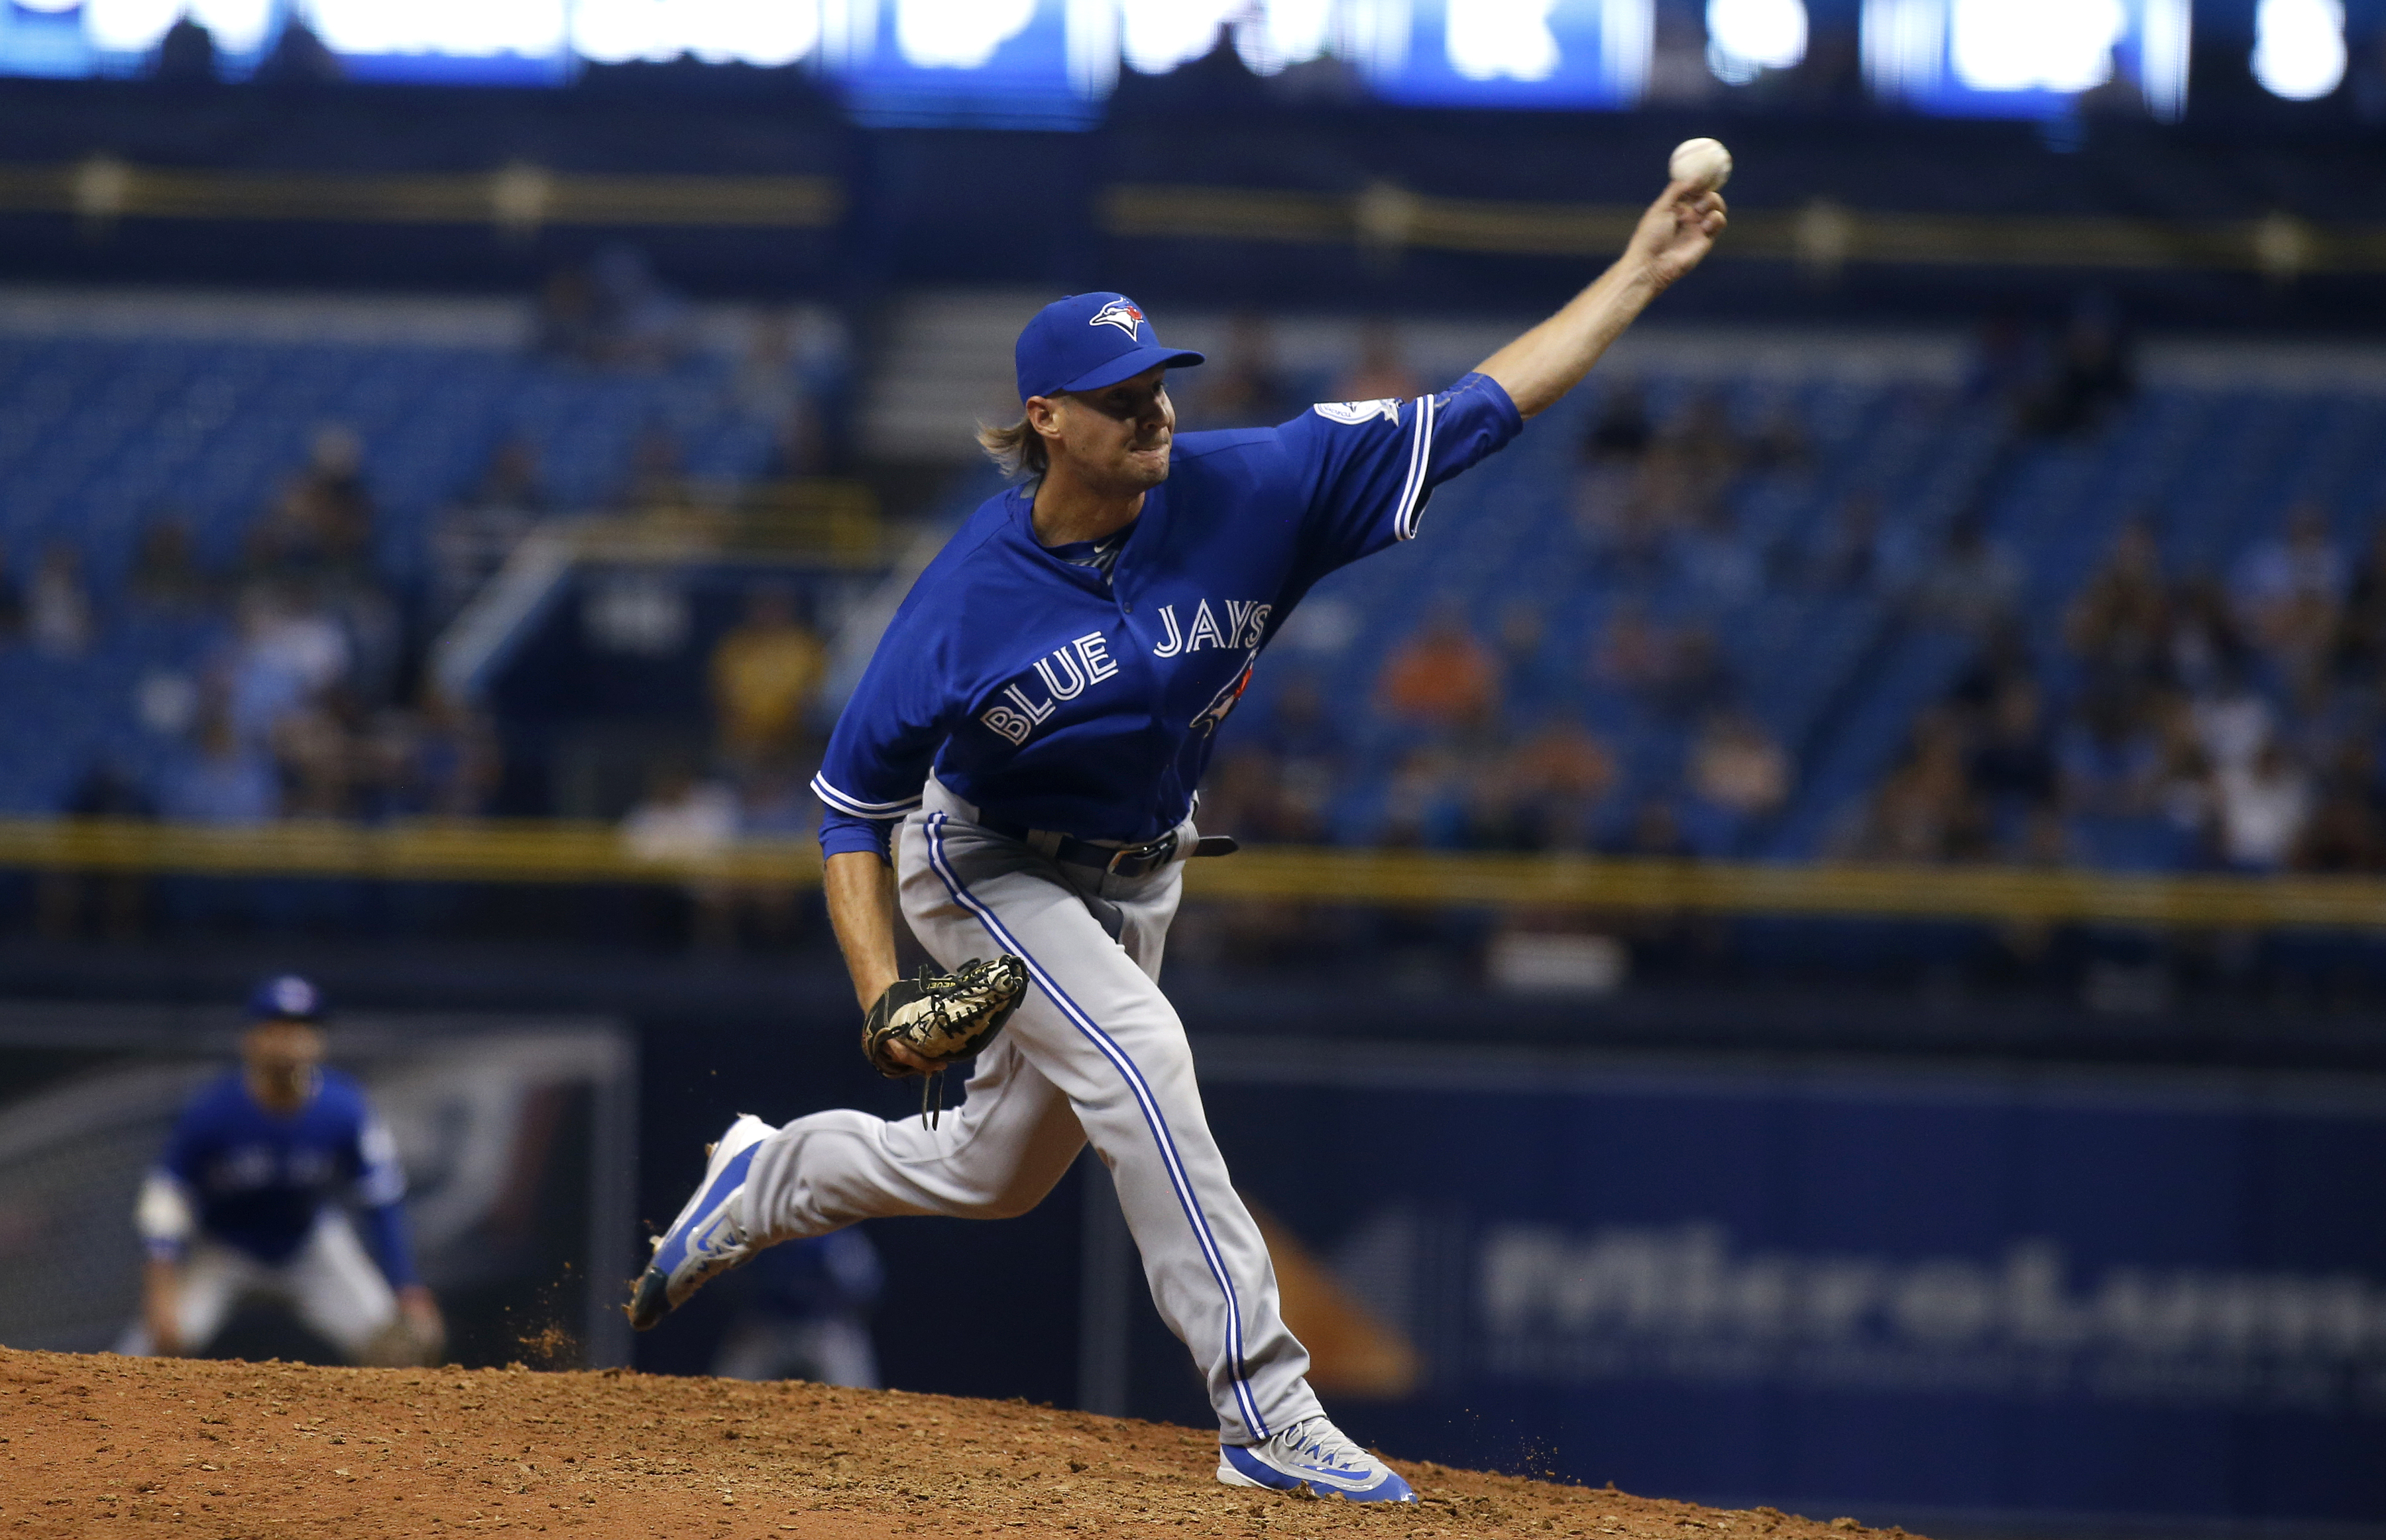 Matt Dermody made his MLB debut with the Toronto Blue Jays on Sept. 3, 2016 at Tropicana Field in St. Petersburg, Florida. (Getty Images)